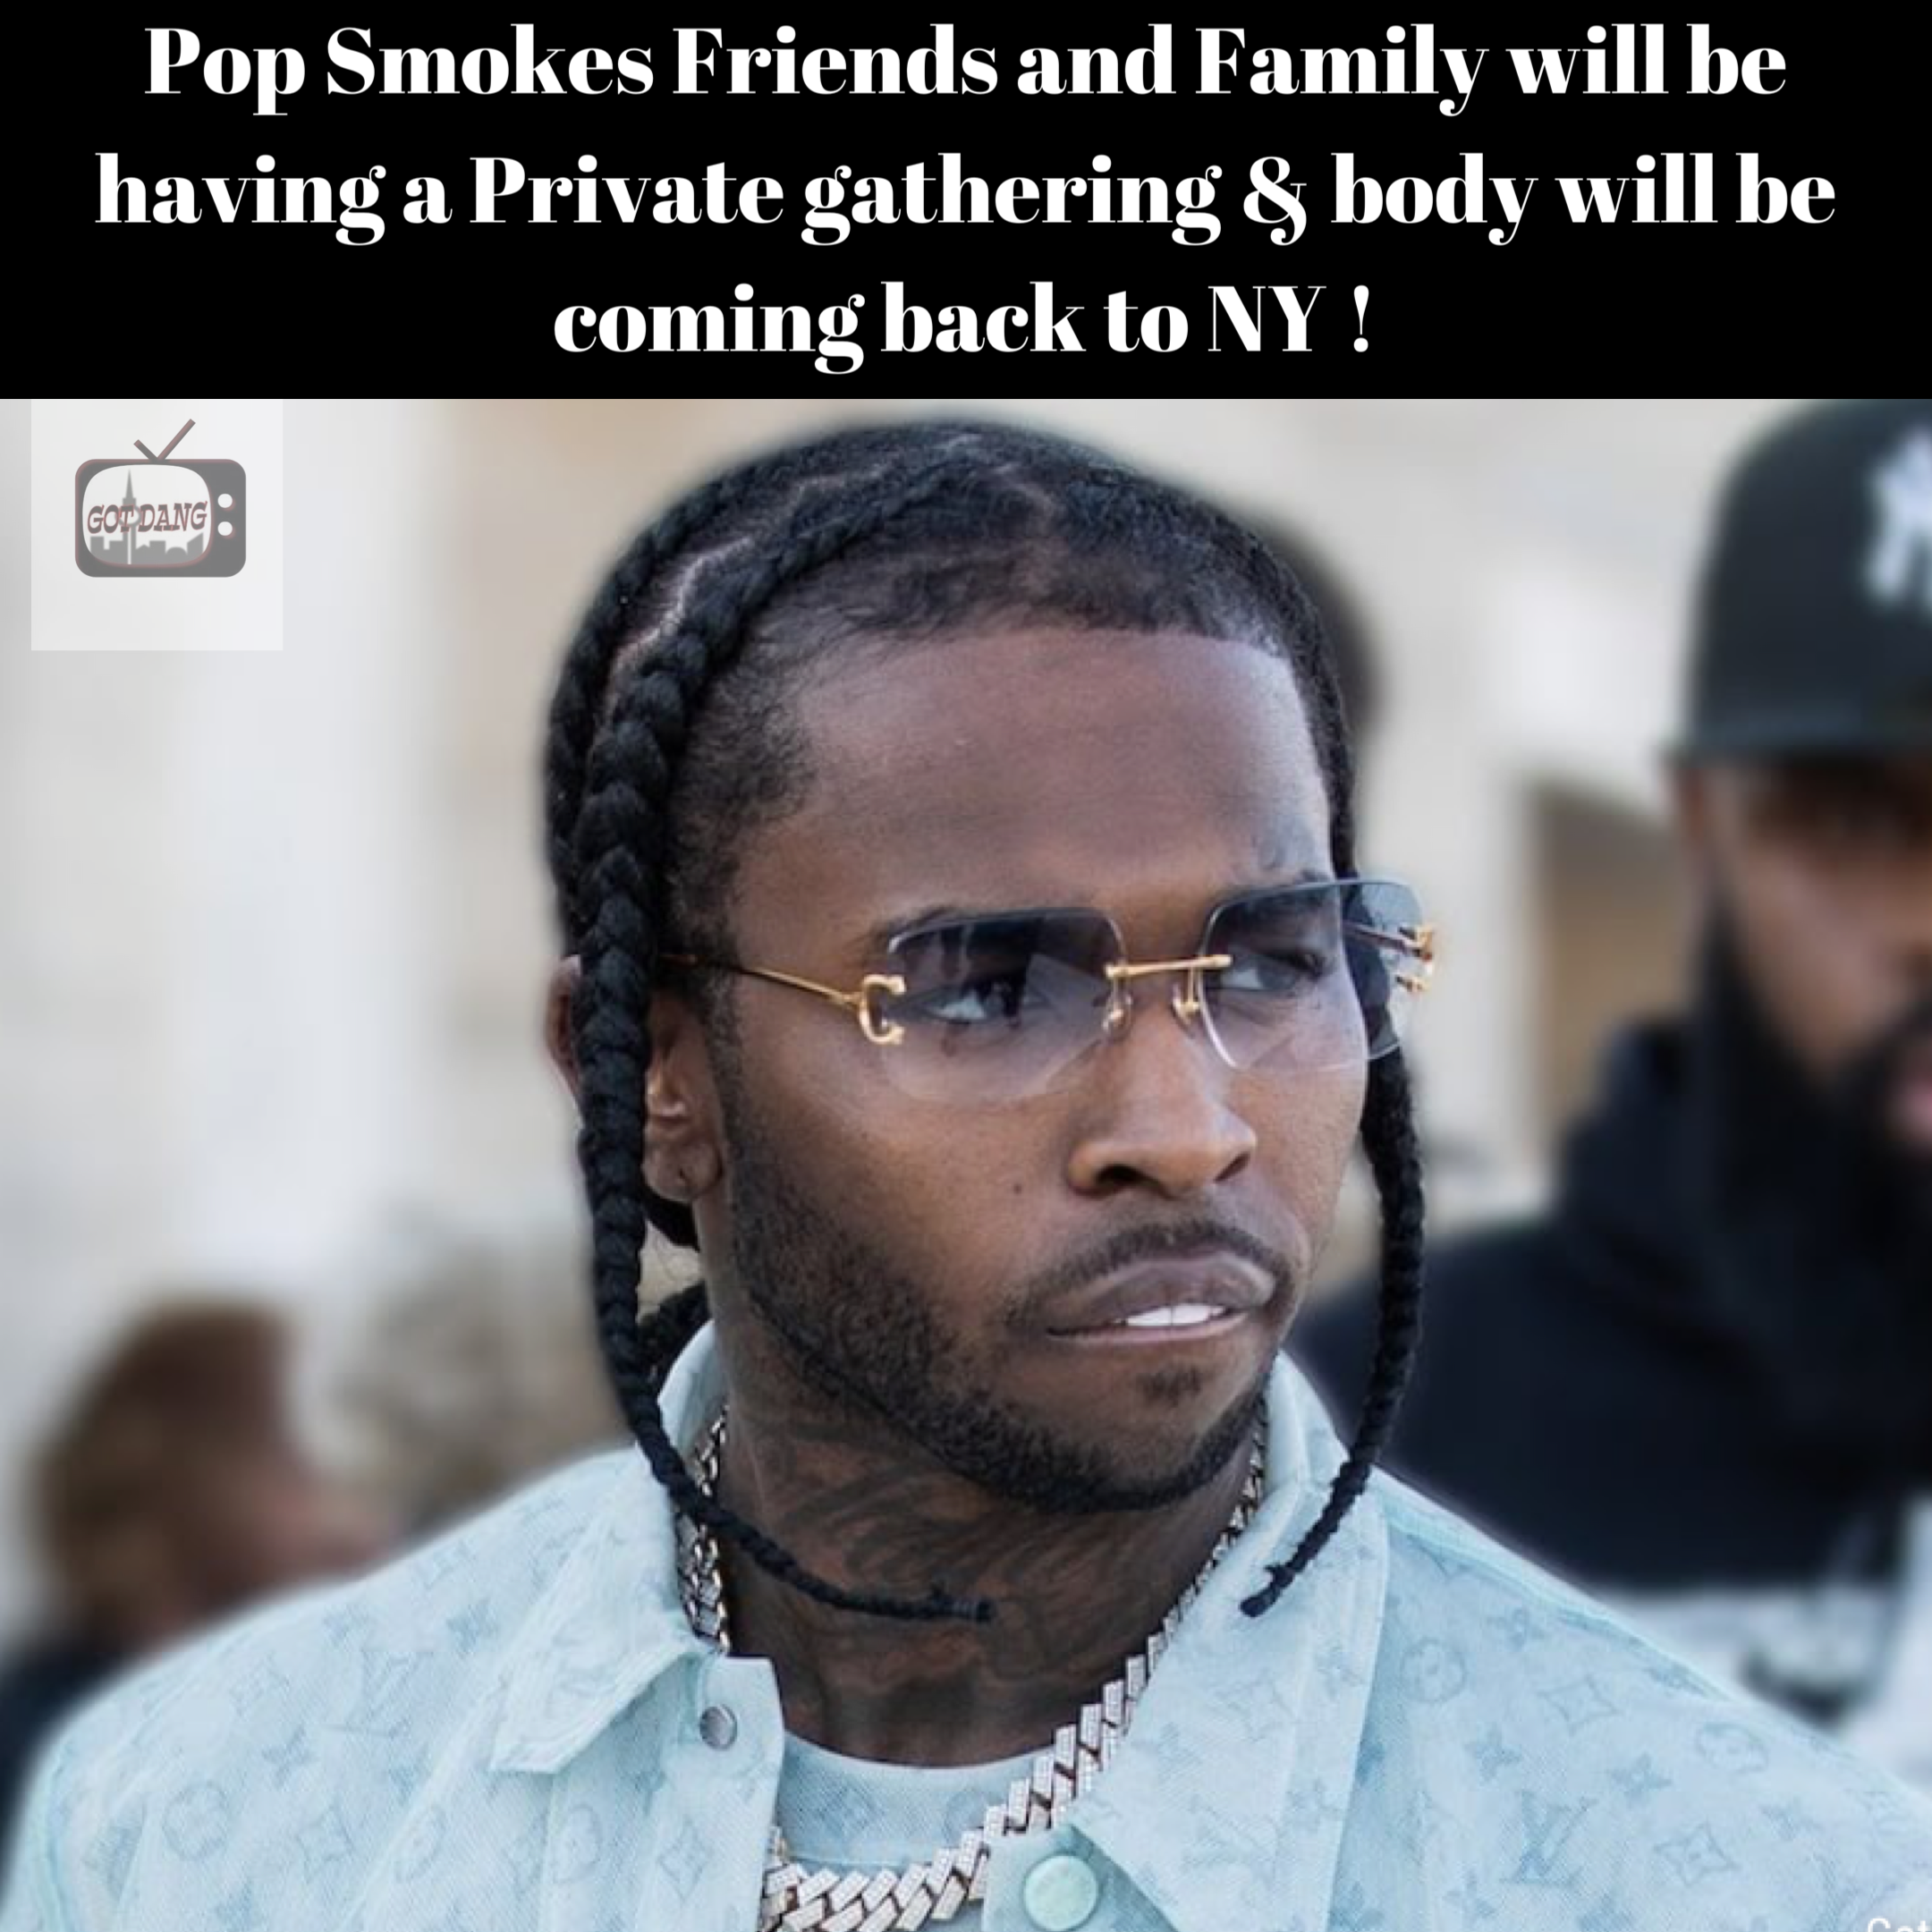 Pop Smoke will be going back to NY also private gathering will take place